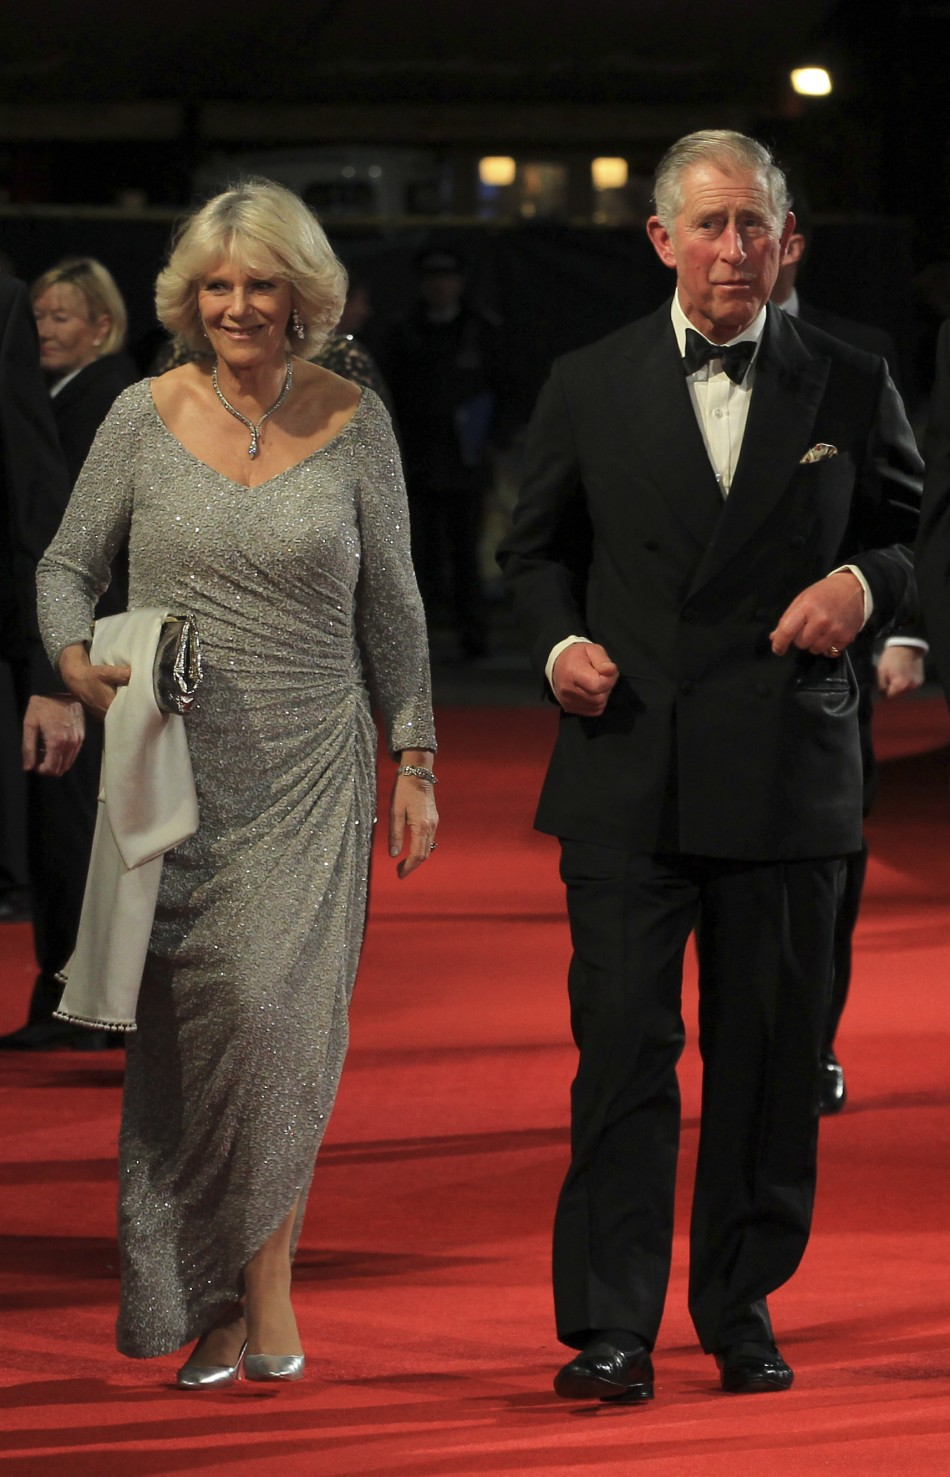 Britains Prince Charles and his wife Camilla, Duchess of Cornwall, arrive at The Royal Premiere of director Martin Scorseses film Hugo at the Odeon Leicester Square cinema in London